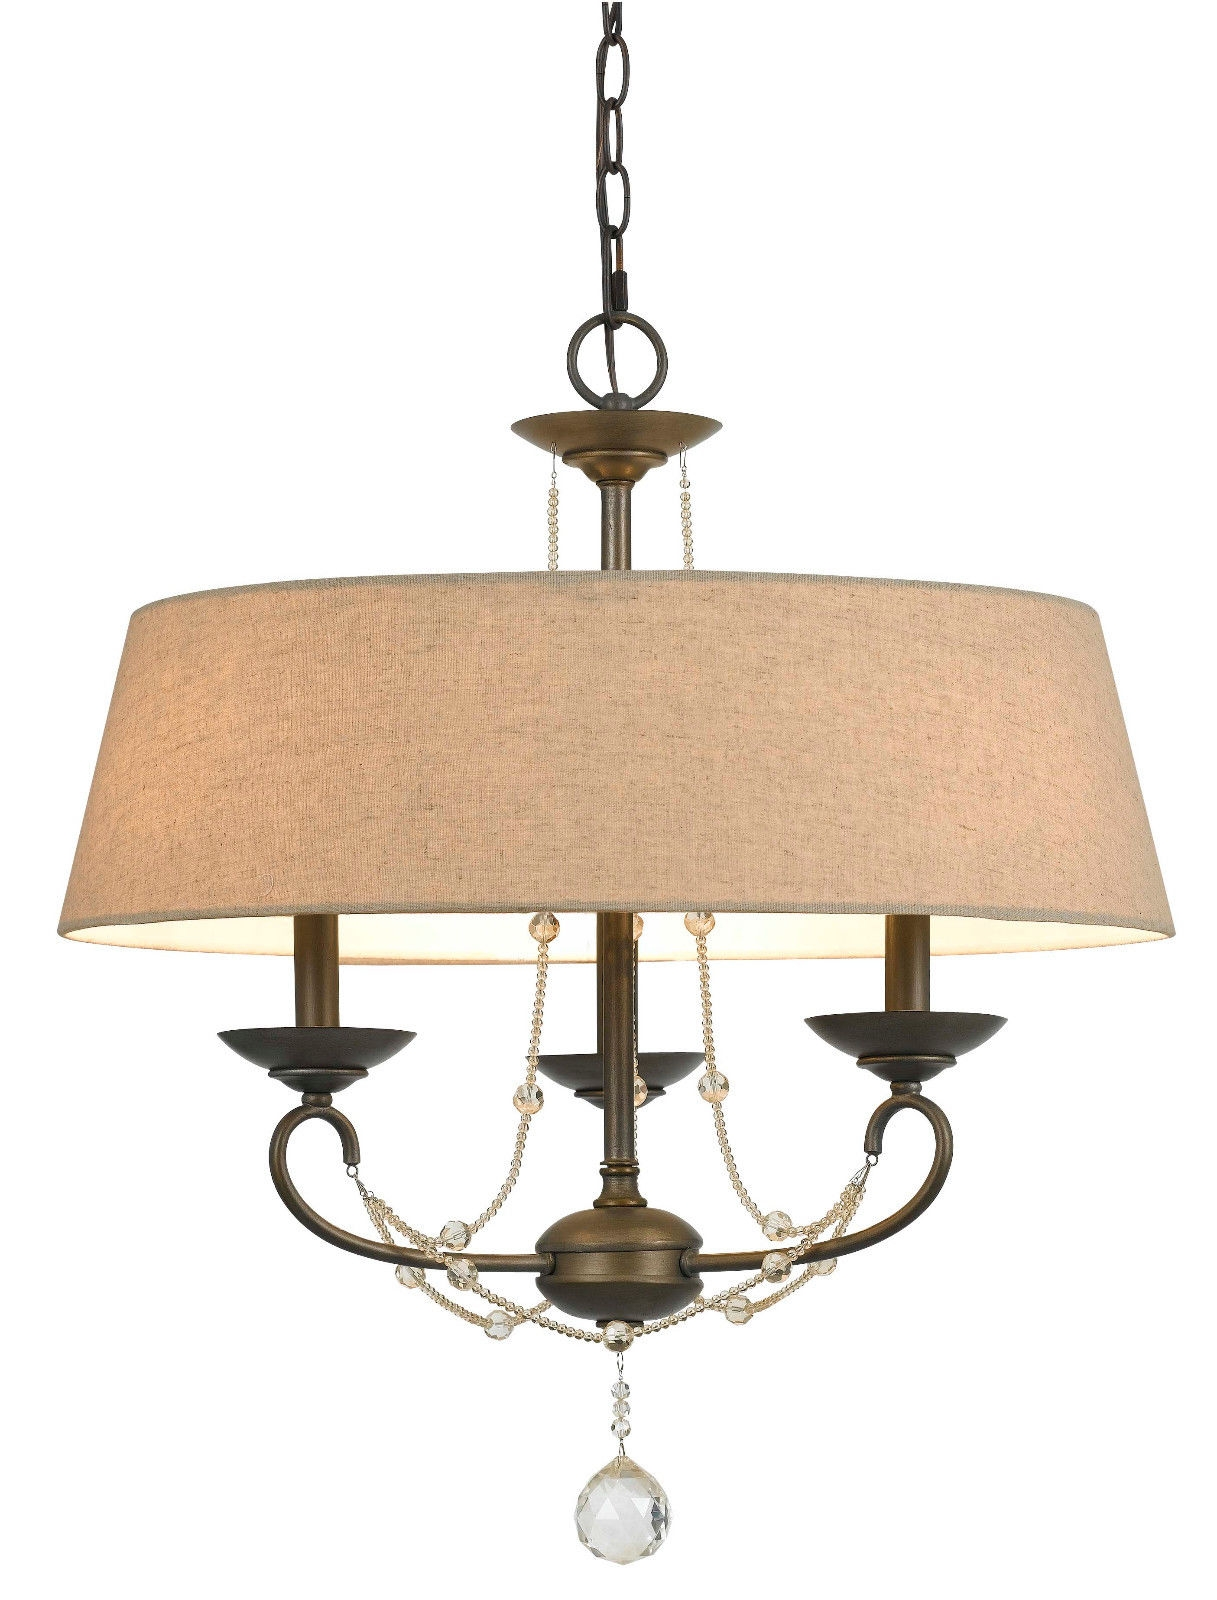 Modern Burlap Drum Shade Chandelier 3 Light Lamp Shade Pro Intended For Bronze Modern Chandelier (Image 10 of 15)